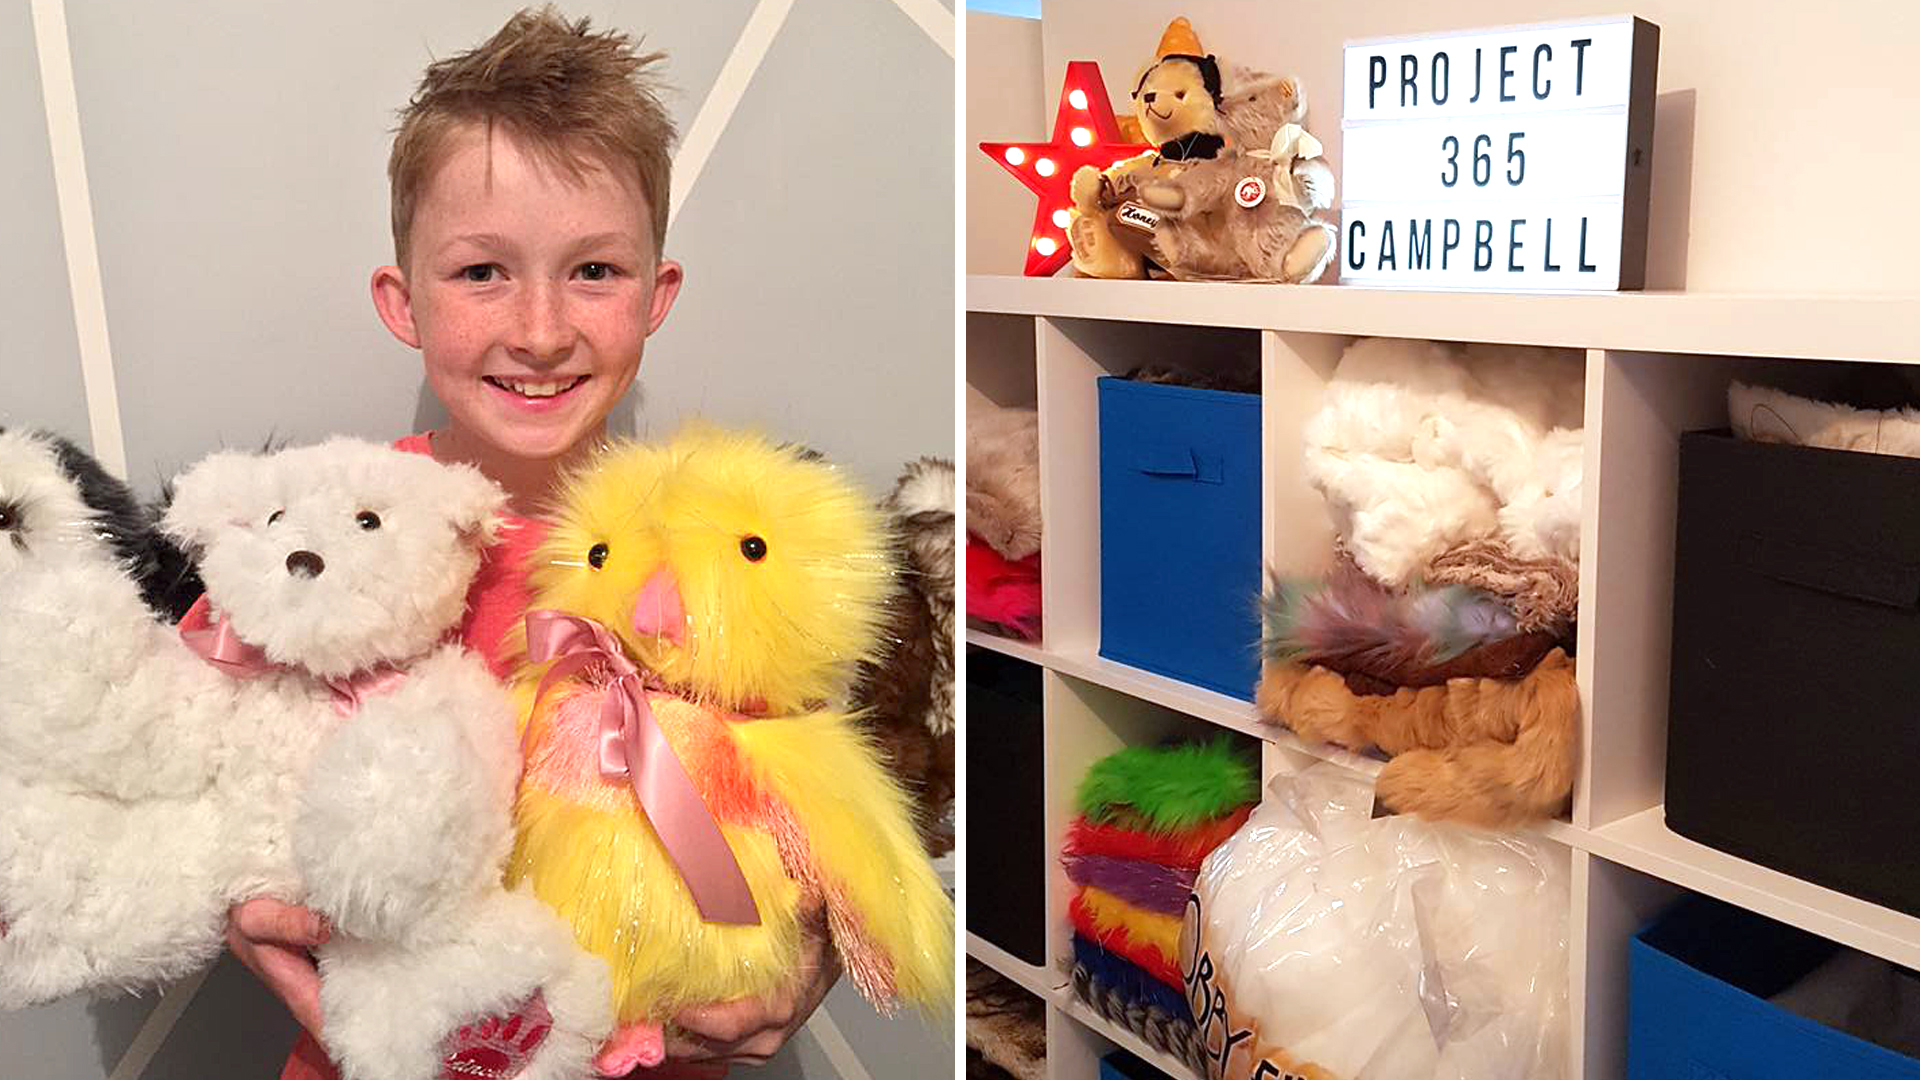 12 Year Old Makes 800 Stuffed Animals For Sick Kids